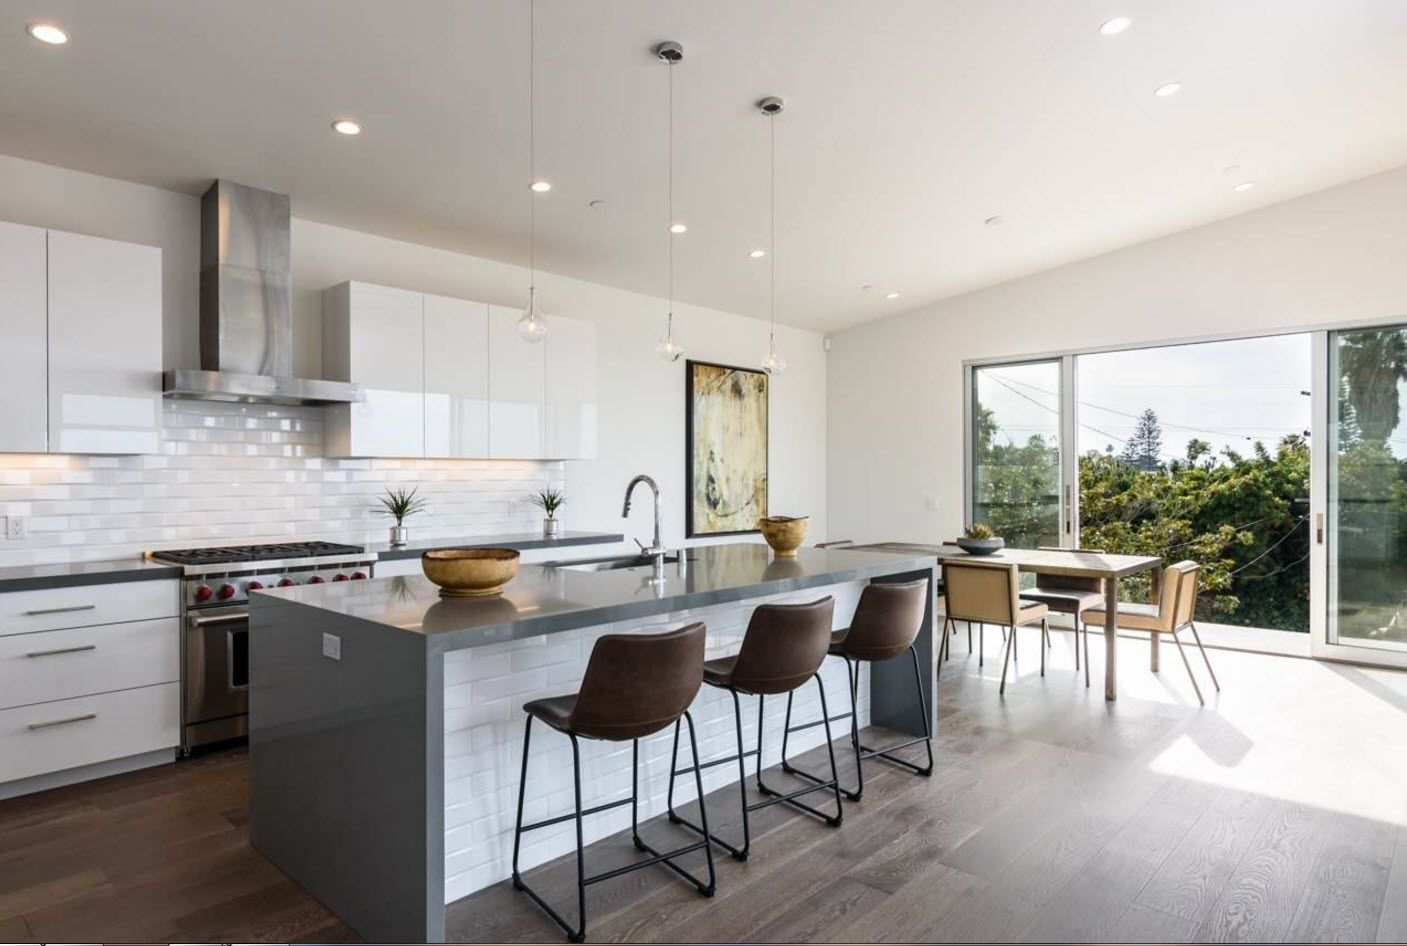 Glossy marble simulating island of the large kitchen with white glossy surfaces